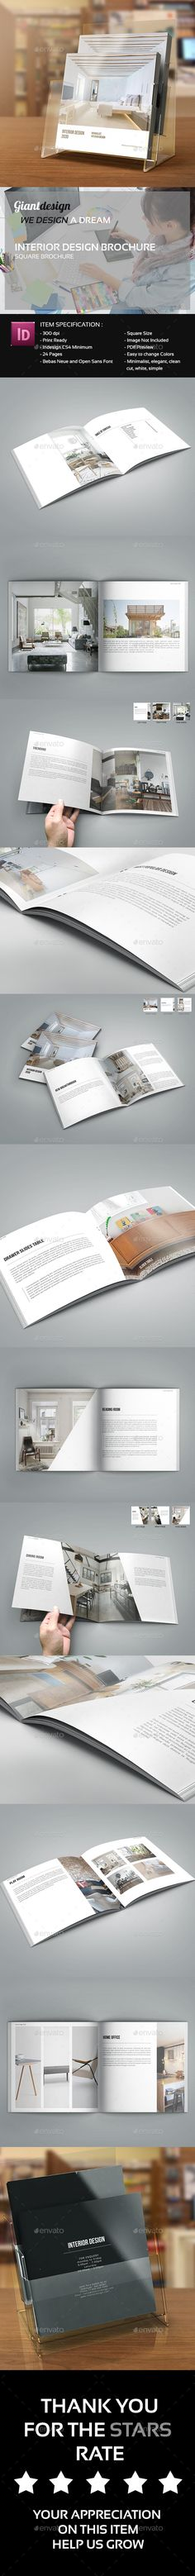 Interior Design Brochure Template - IndieStock Print templates - interior design brochure template